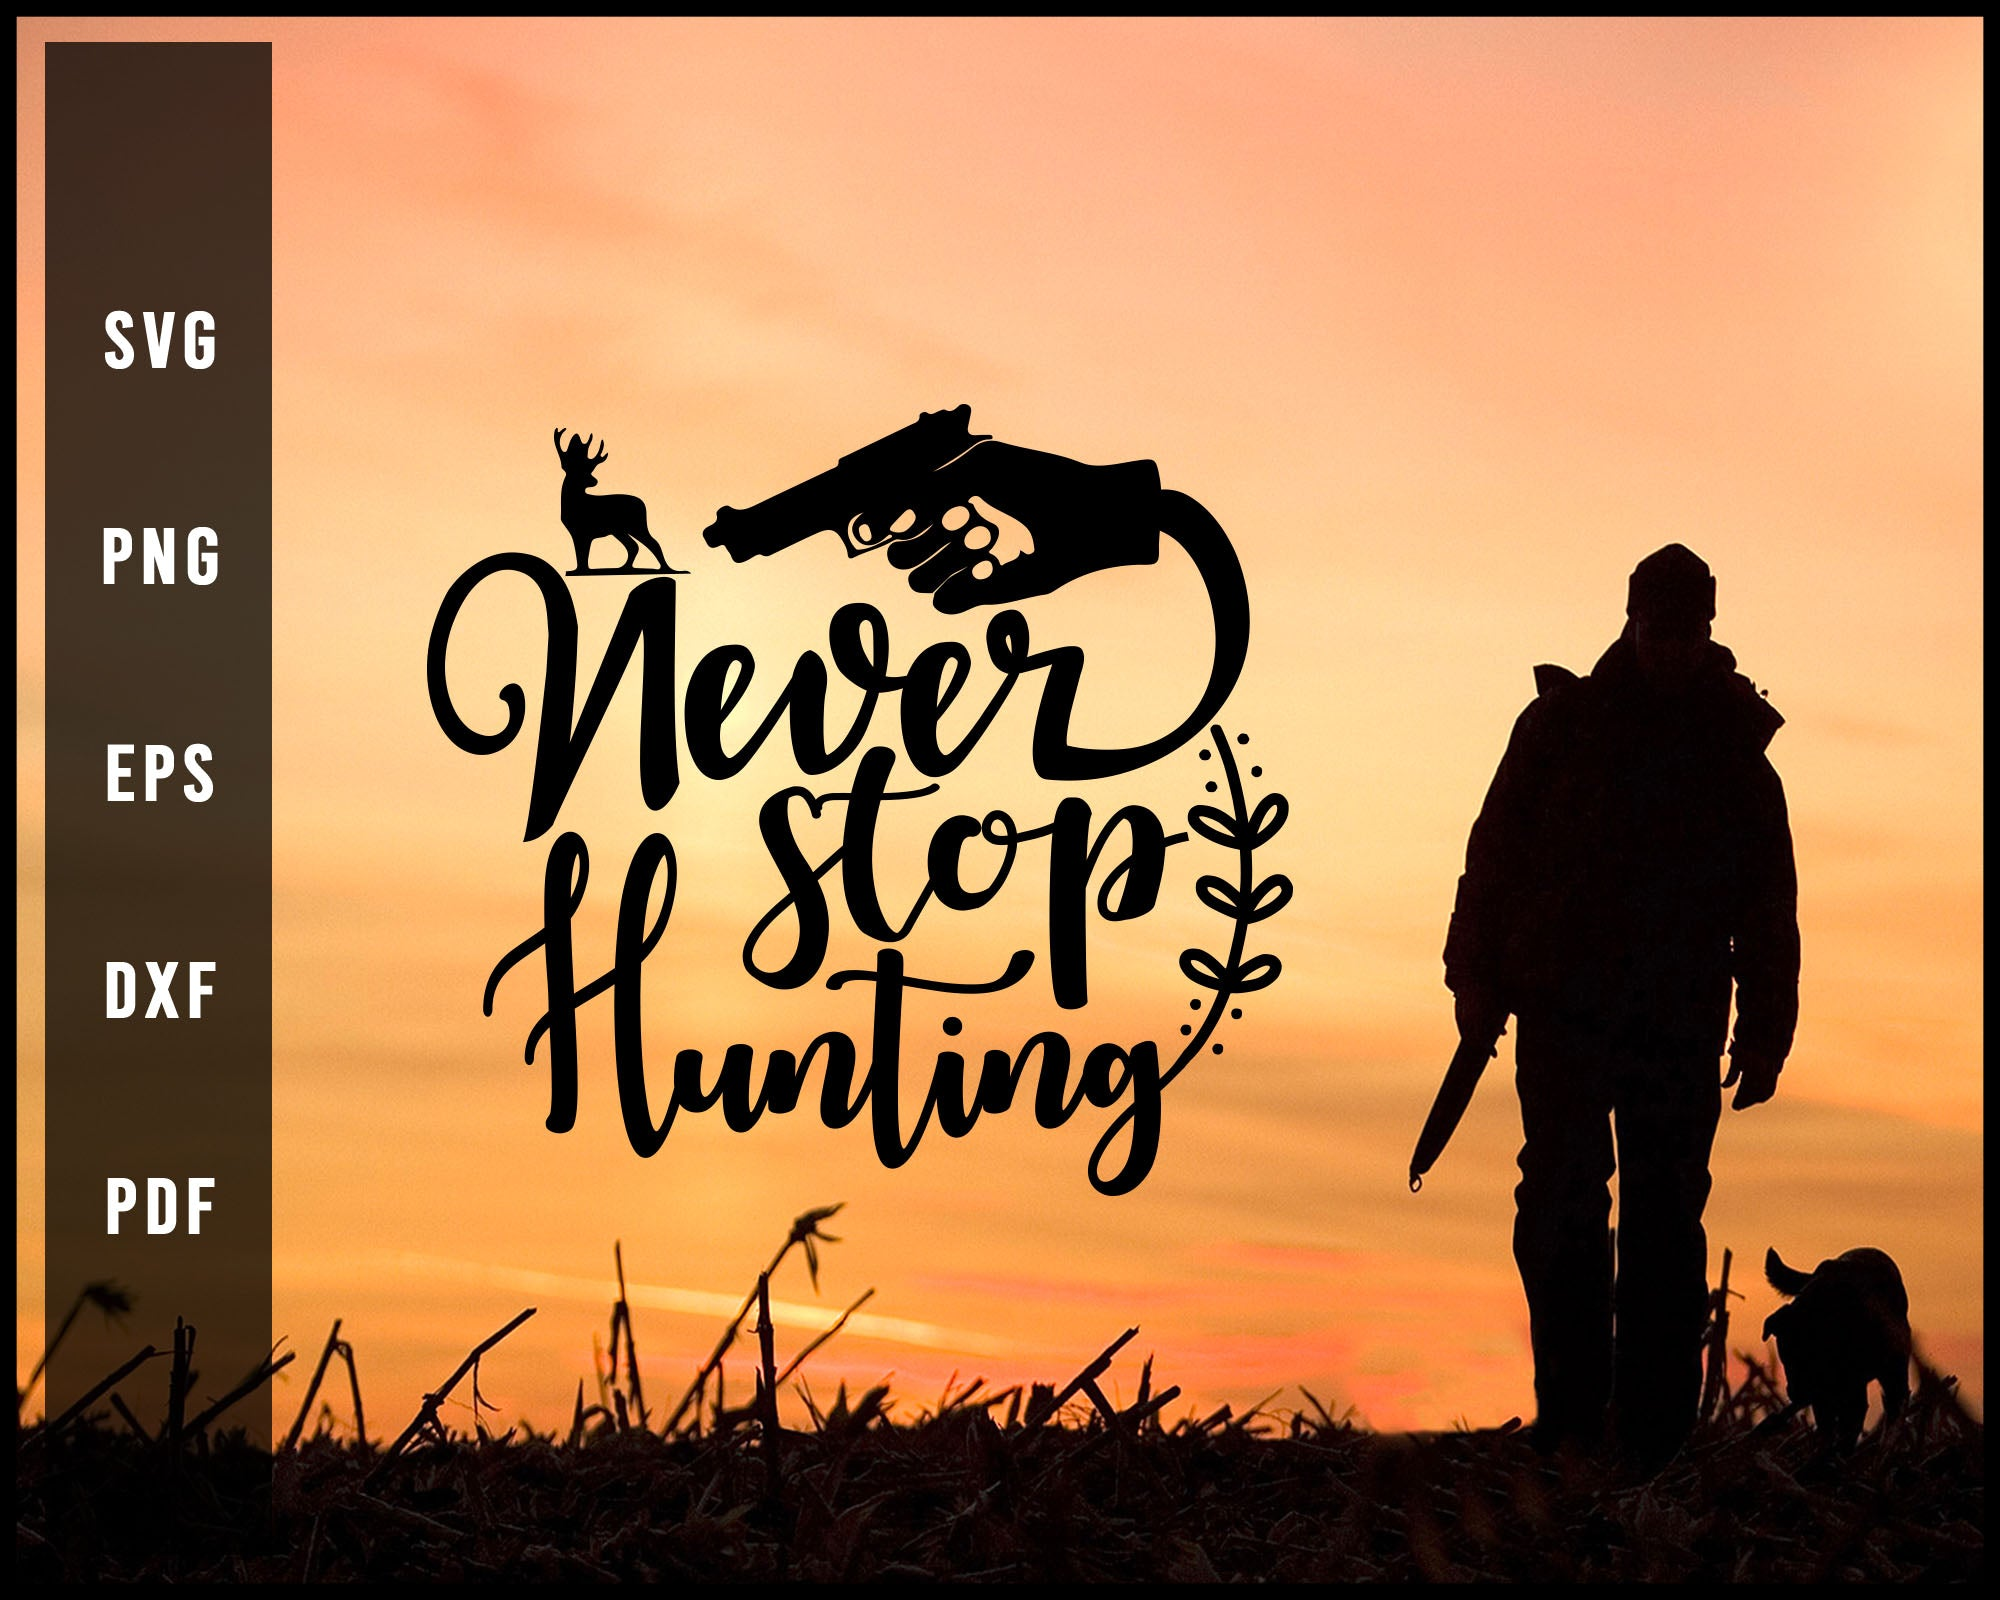 Never Stop Hunting svg png Silhouette Designs For Cricut And Printable Files